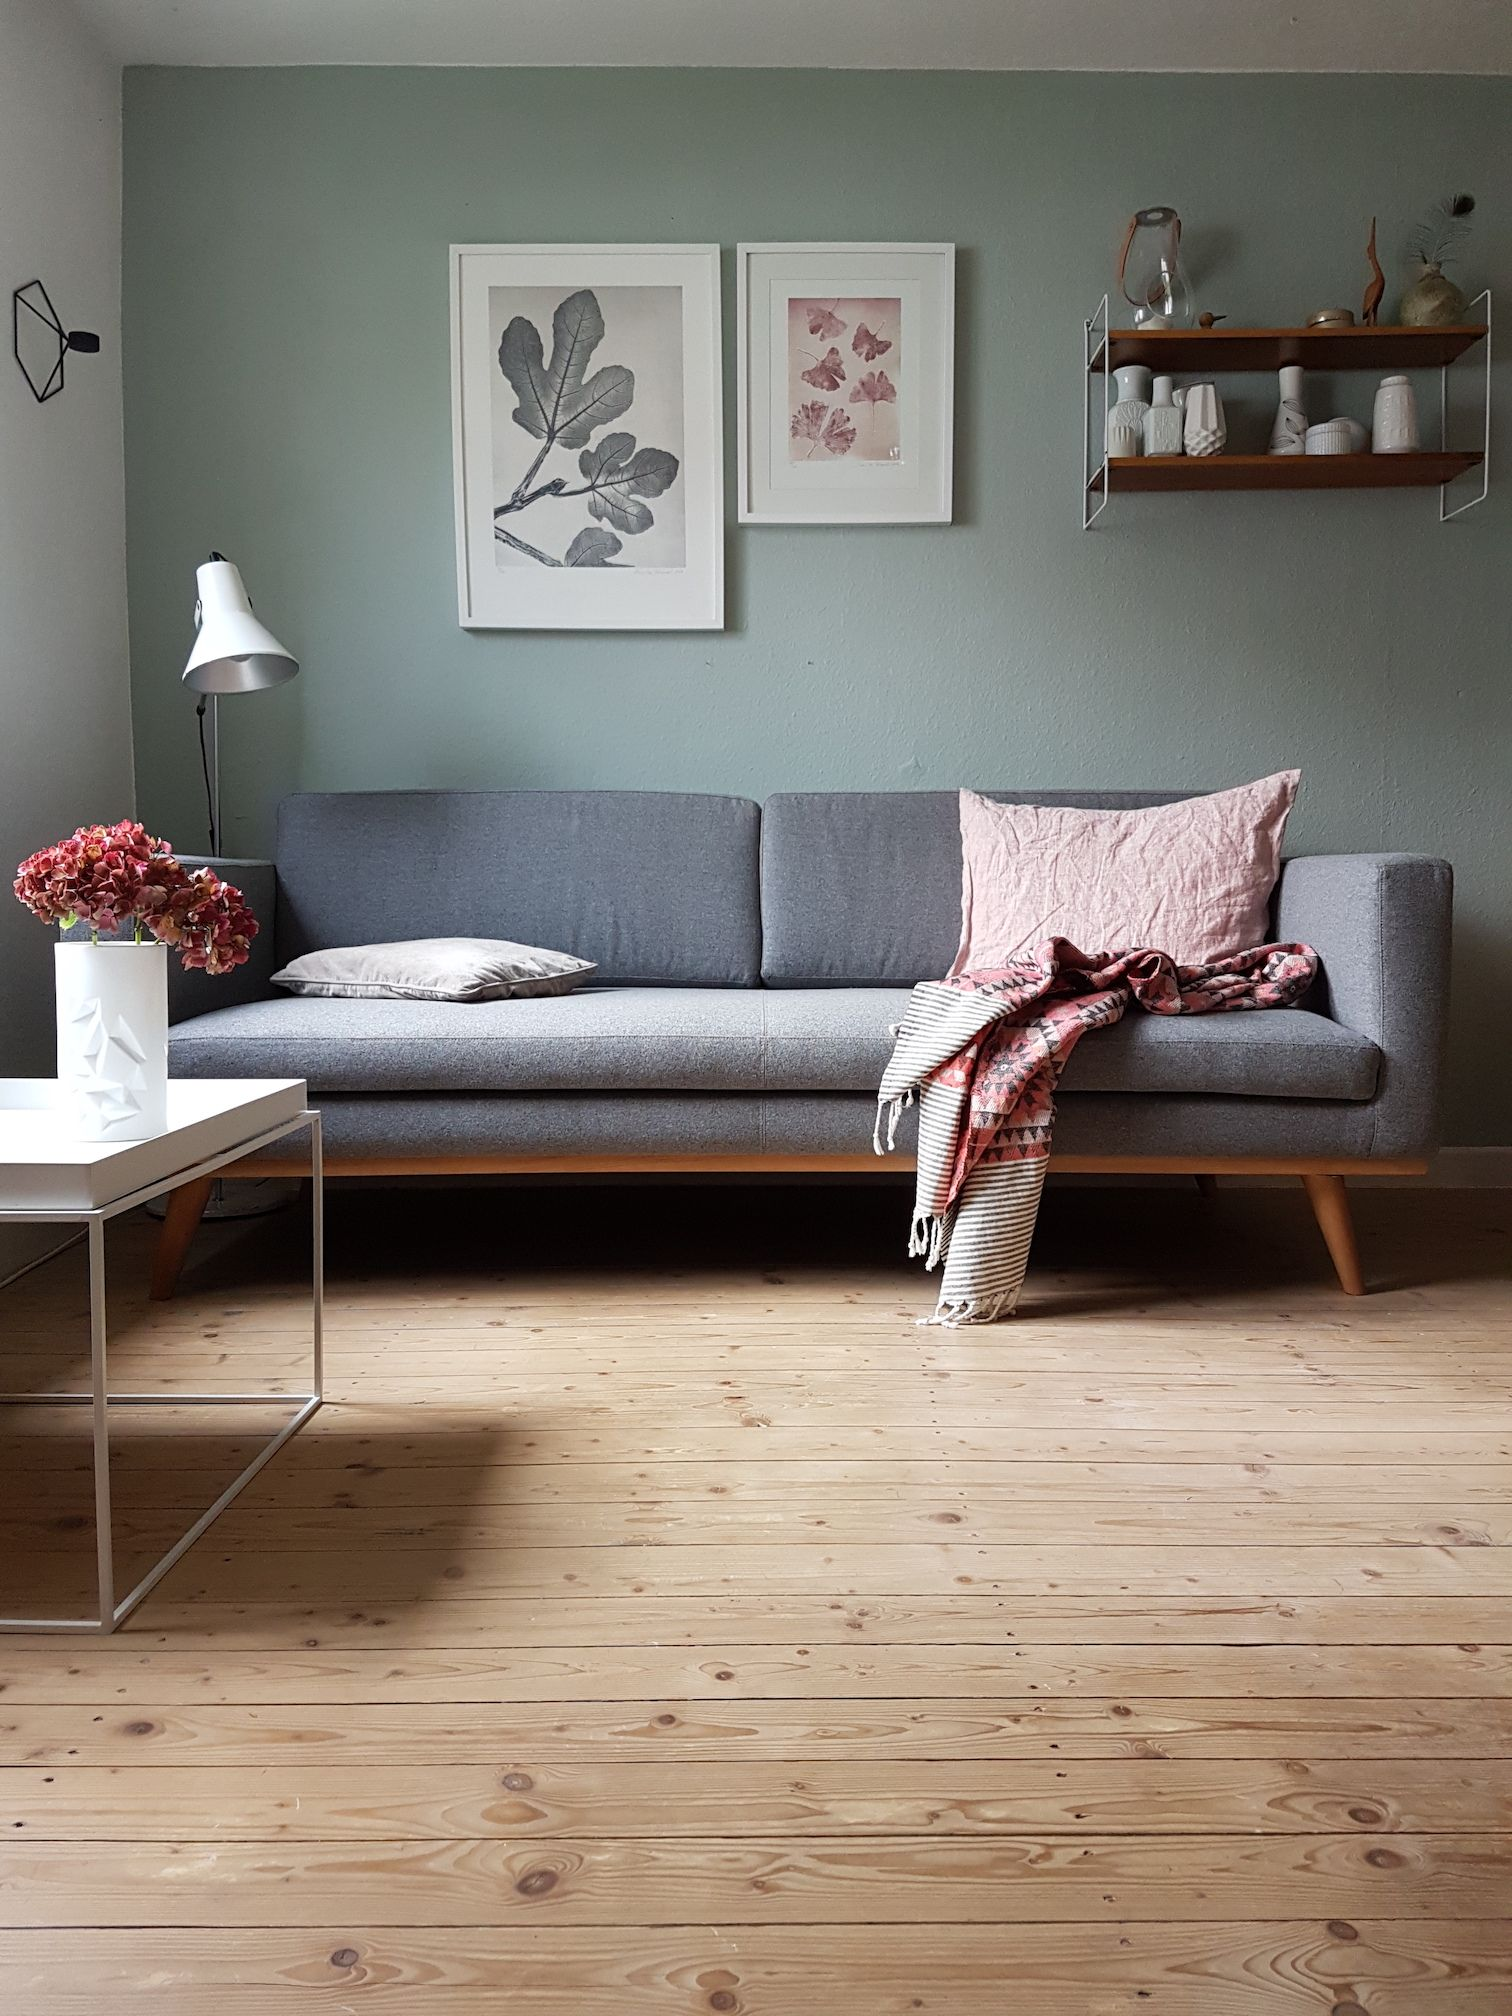 Zimmer im traditionellen stil patti bö patriciabohmig on pinterest